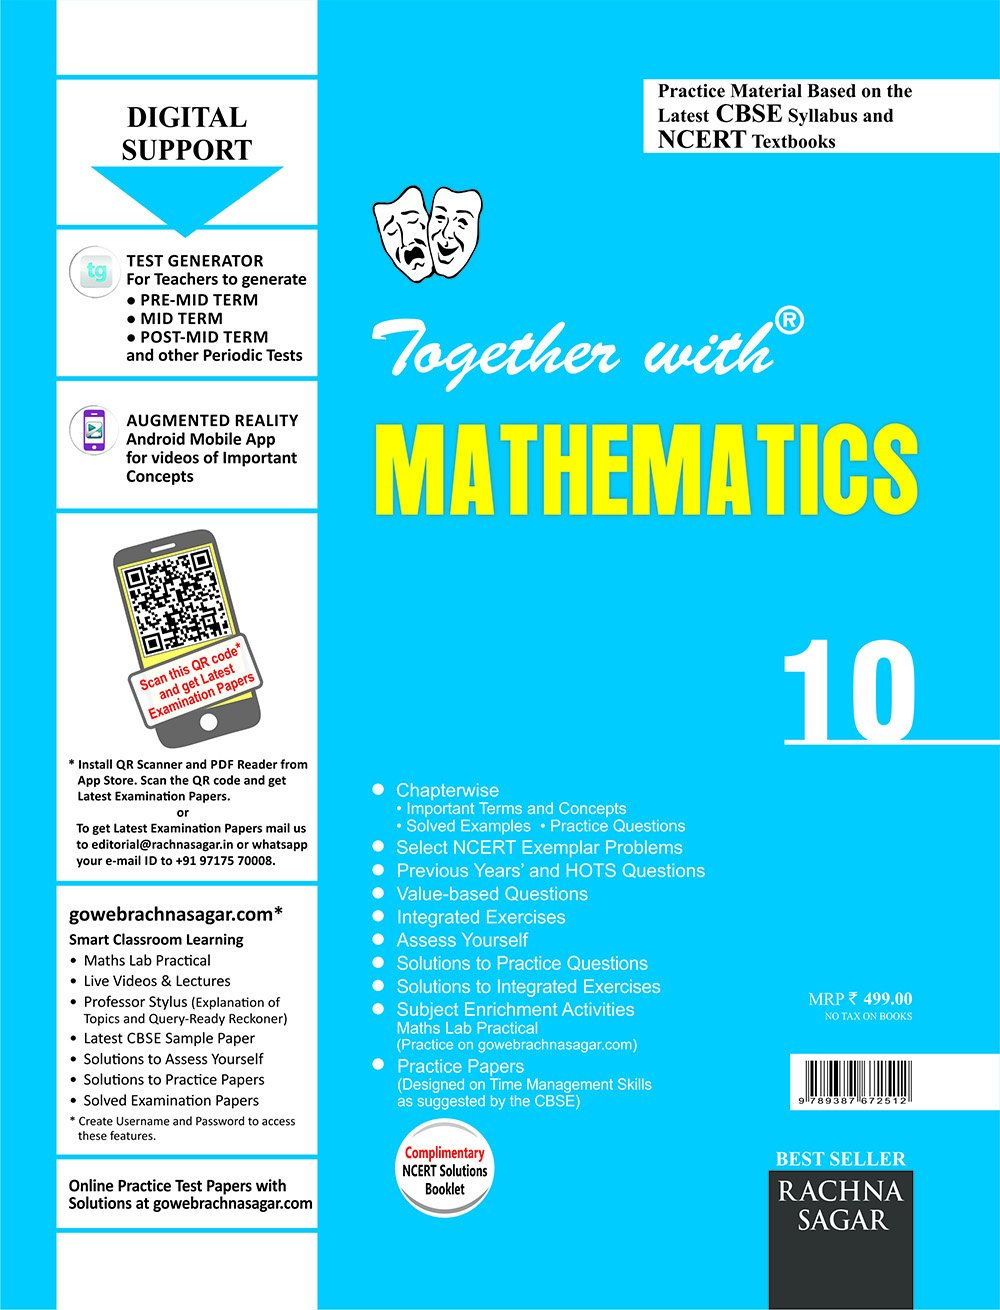 Together with CBSE/NCERT Practice Material Chapterwise for Class 10